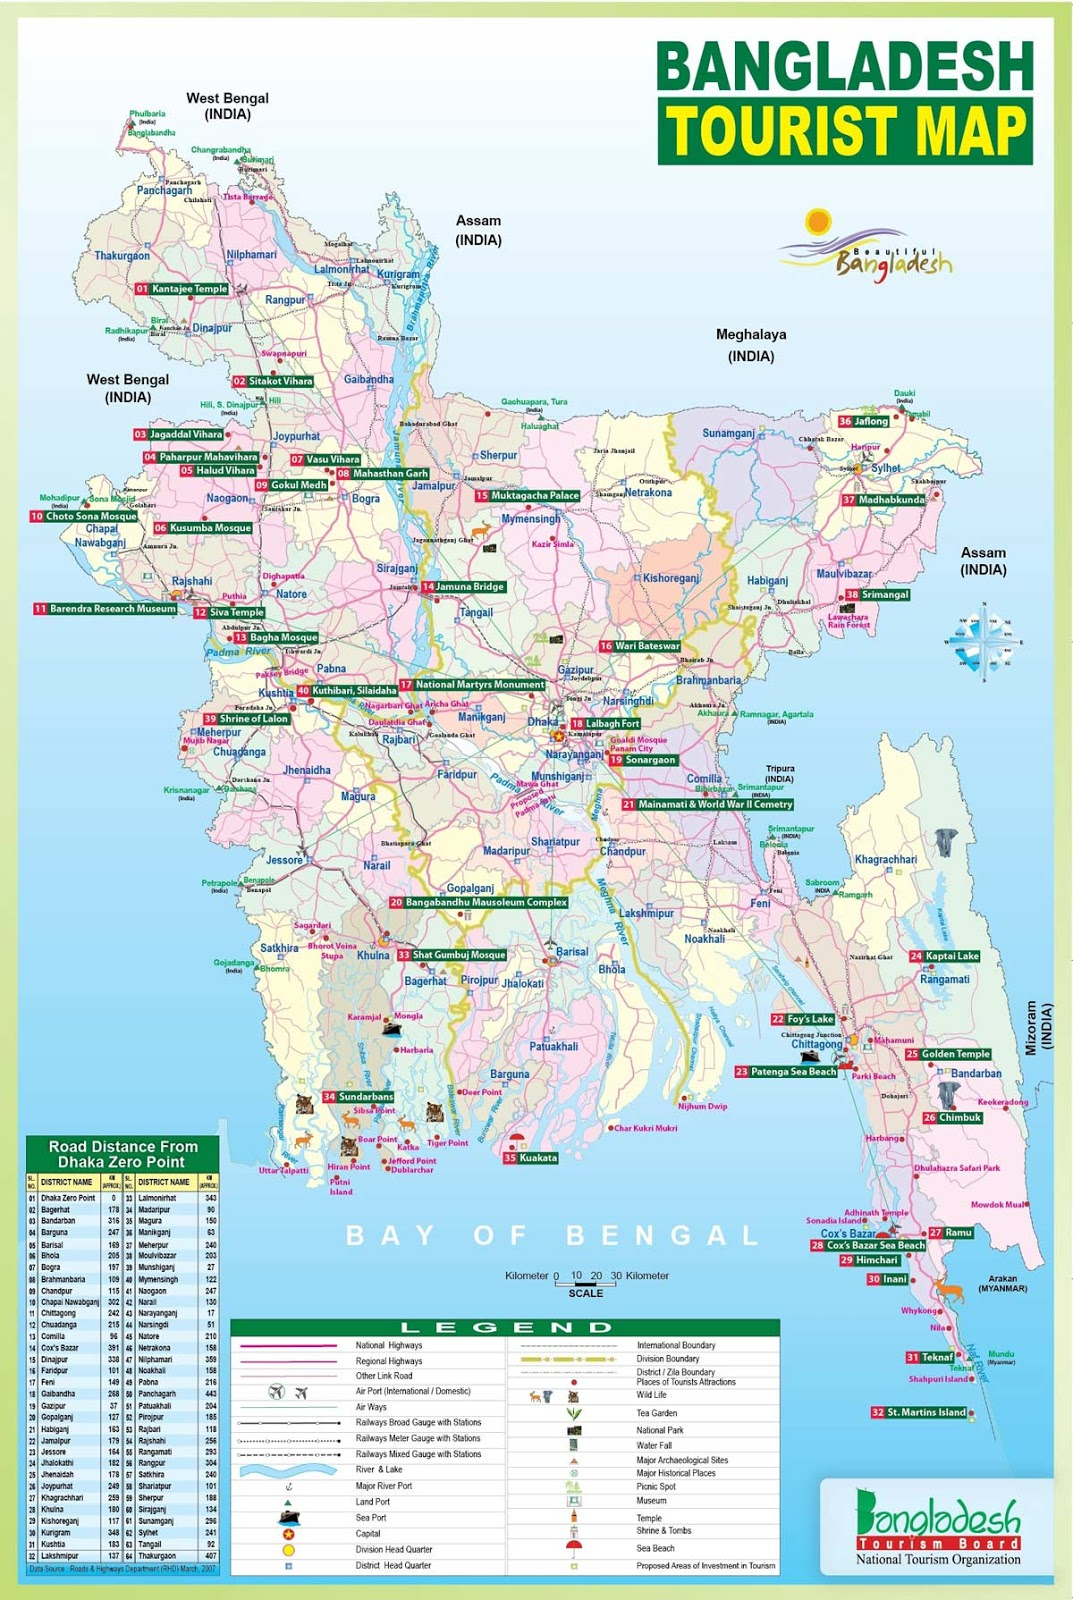 Tourist Map of Bangladesh